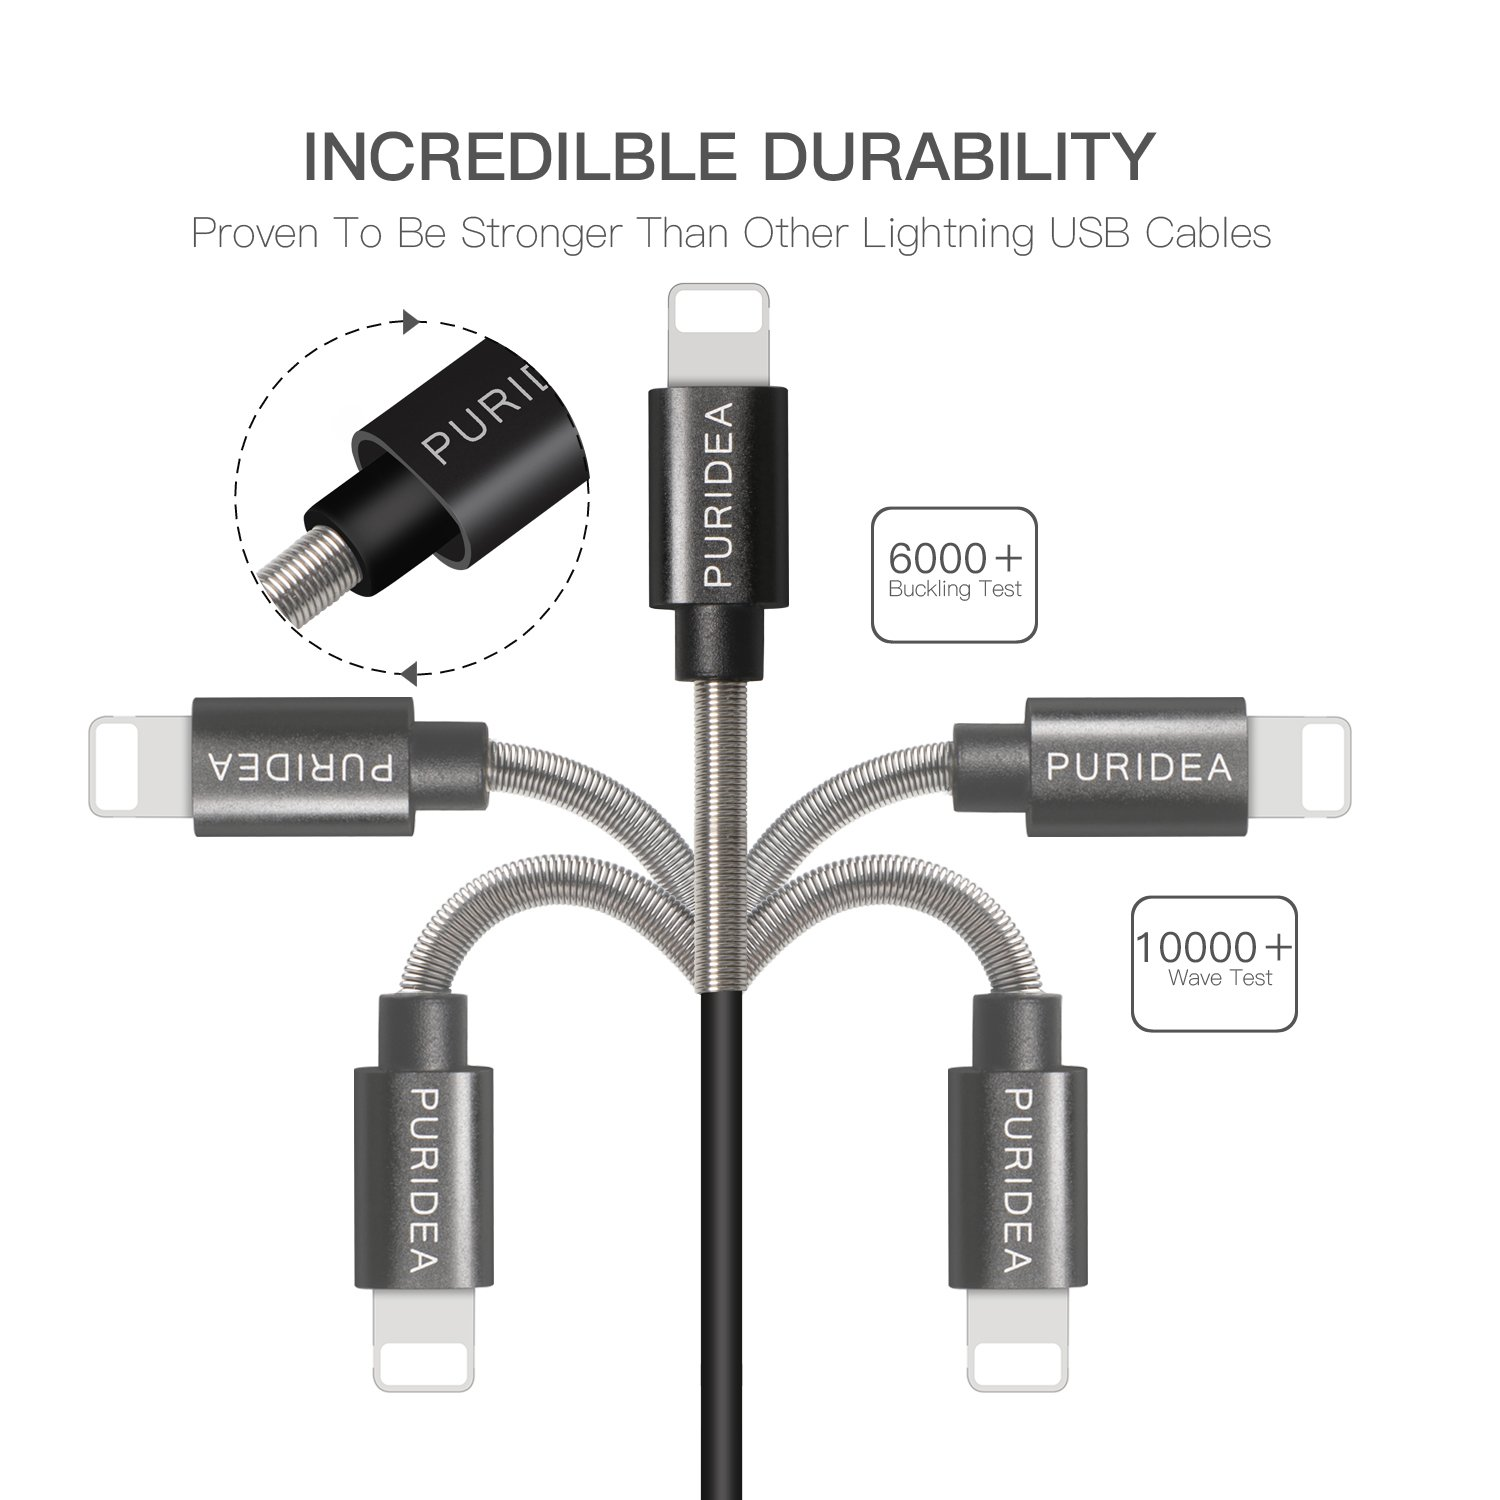 Puridea 7 Inch Short Iphone Cord Black 5 Pack Charging Cable Usb Certified Fast Ipad Lightning Compatible For X 8 6s 6 Remax Car Charger 3 Output Saver 36a White